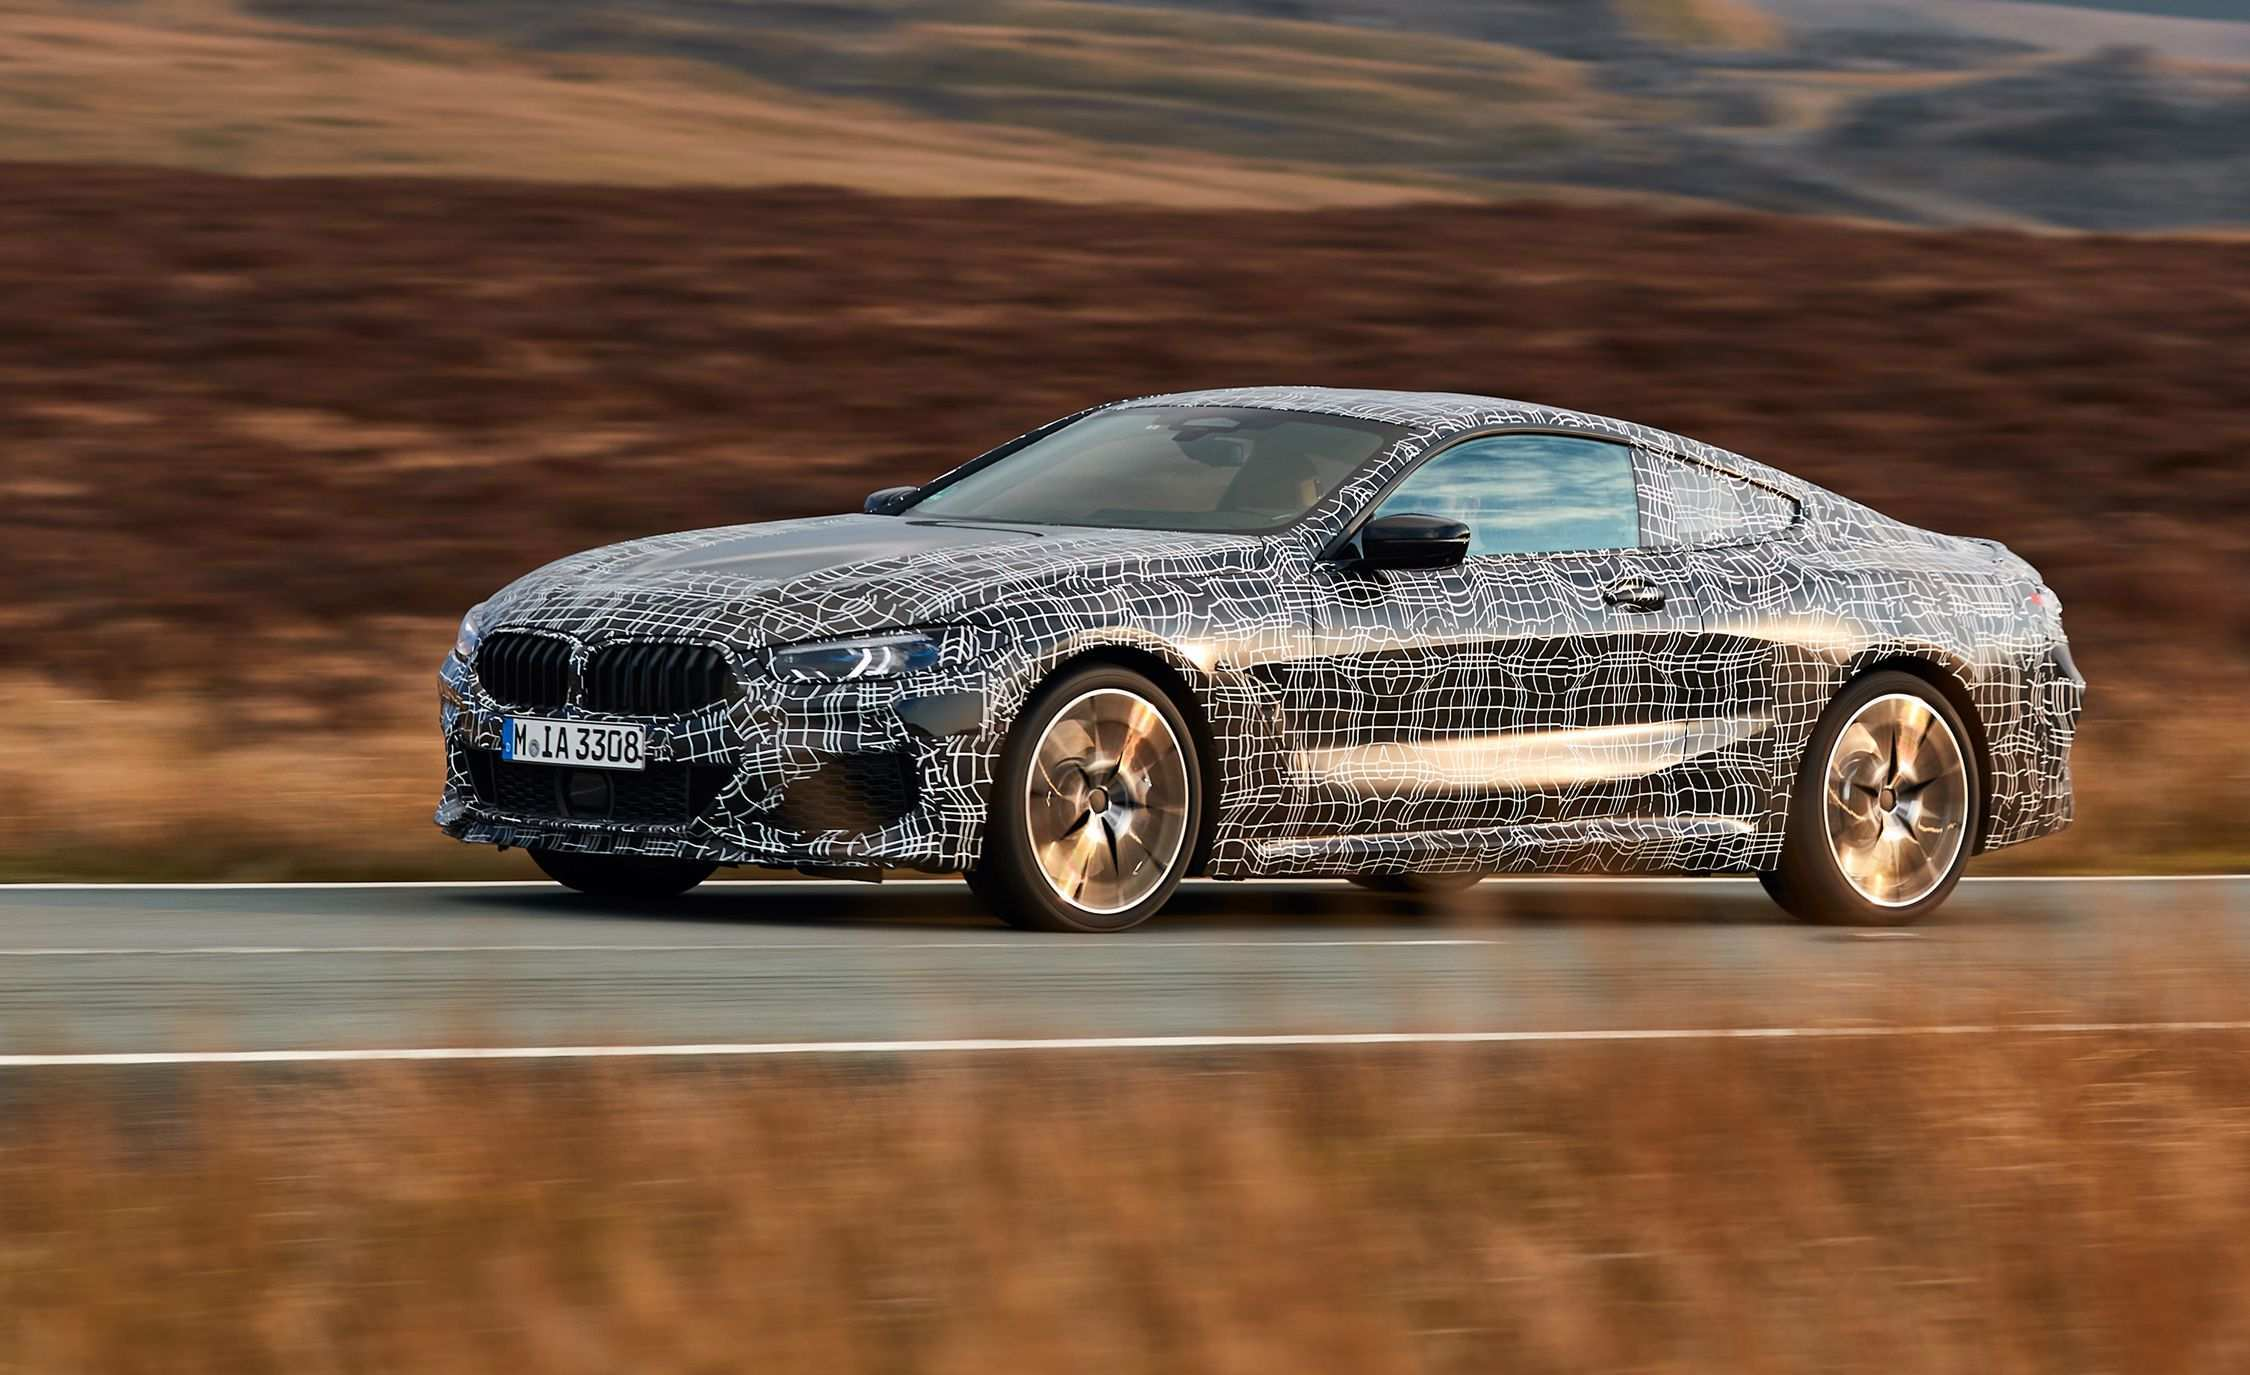 37 Concept of 2019 Bmw 8 Series Release Date Interior by 2019 Bmw 8 Series Release Date